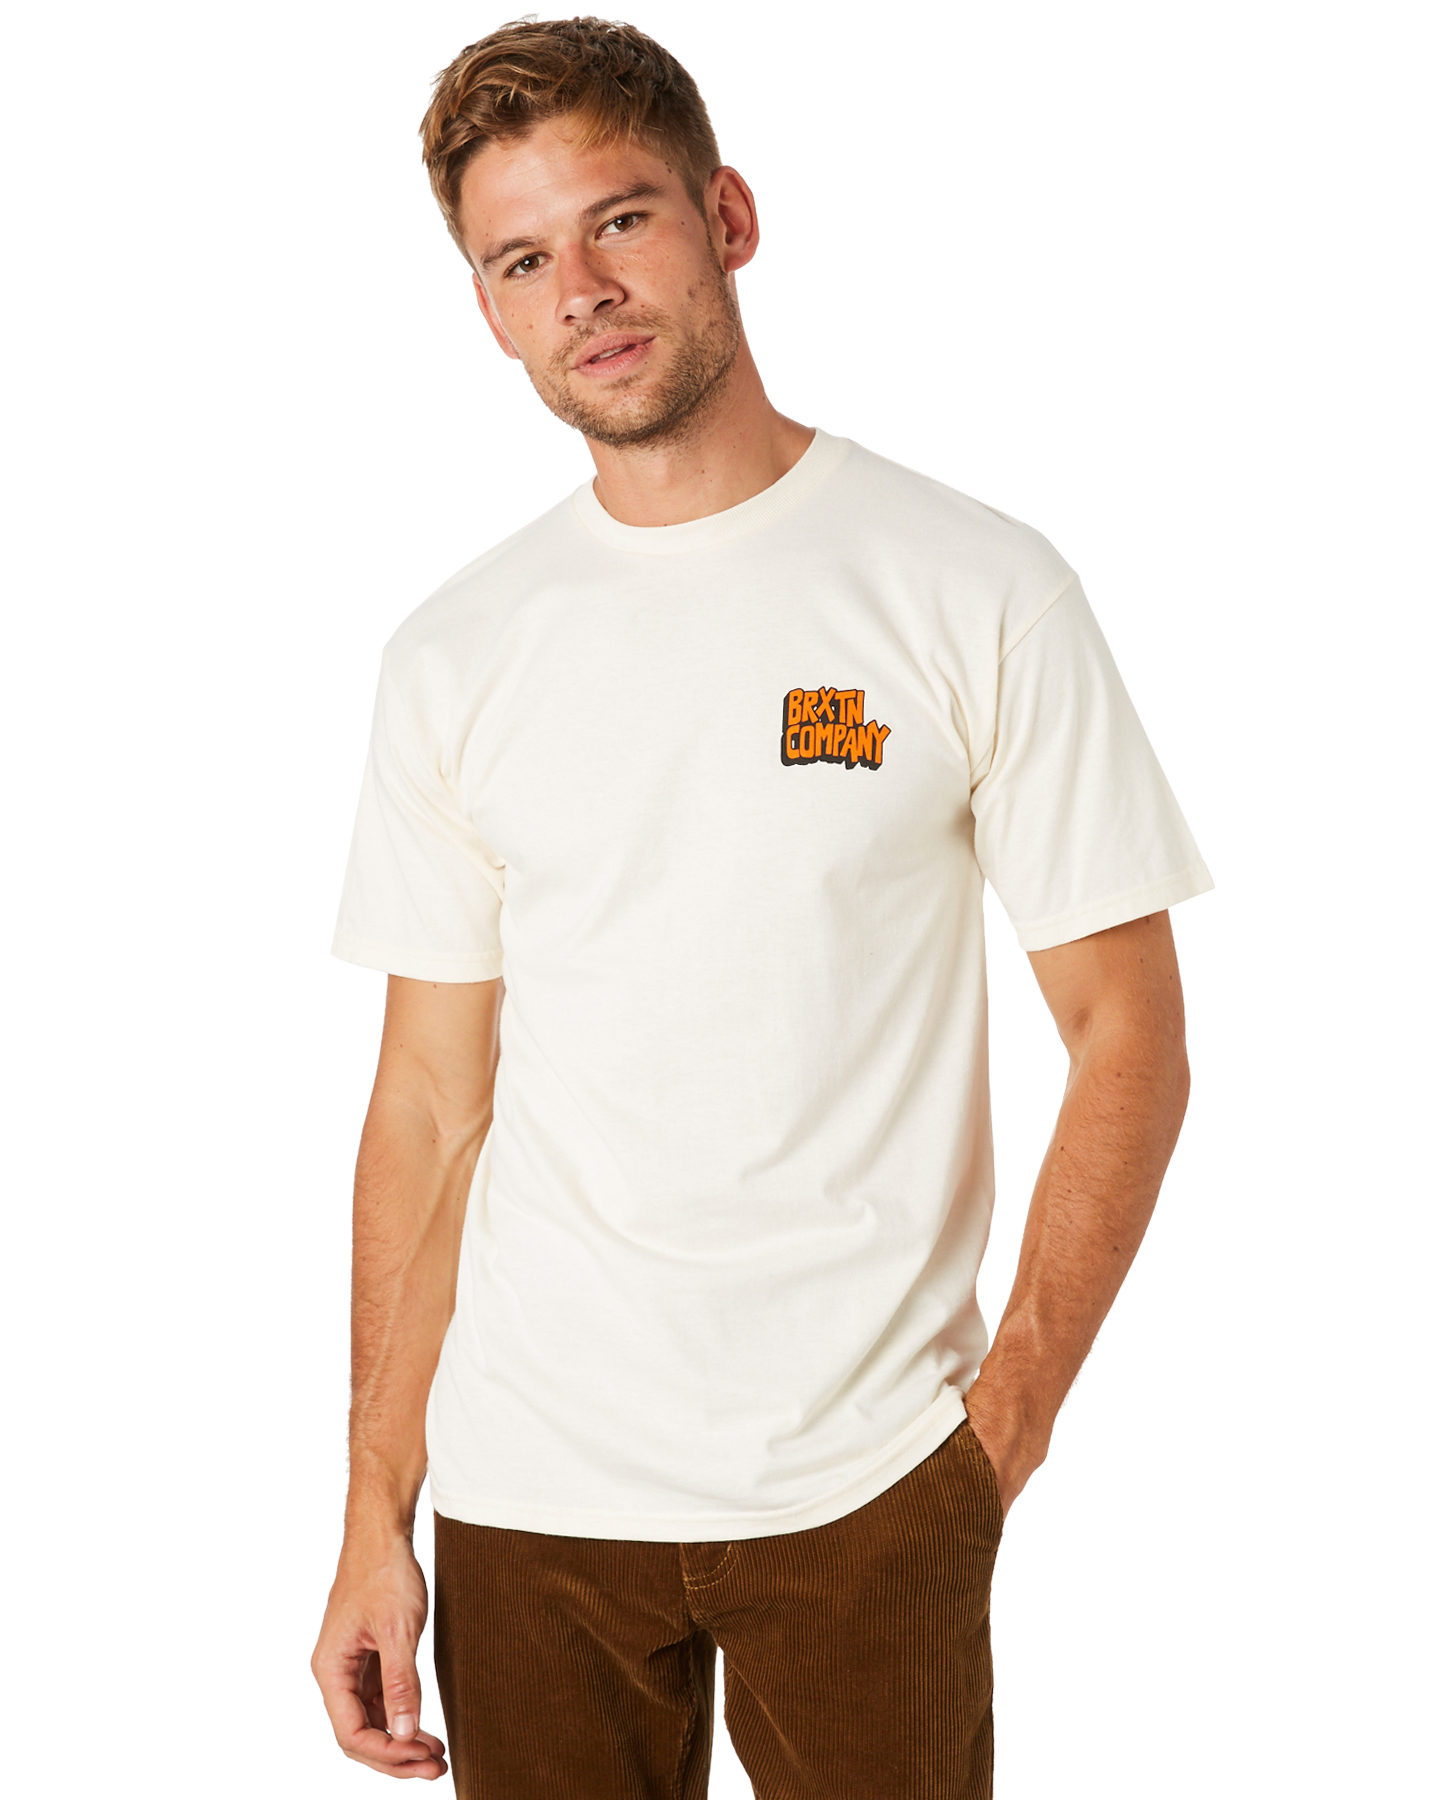 68c817a667 ... OFF WHITE MENS CLOTHING BRIXTON TEES - 06958OFFWH ...